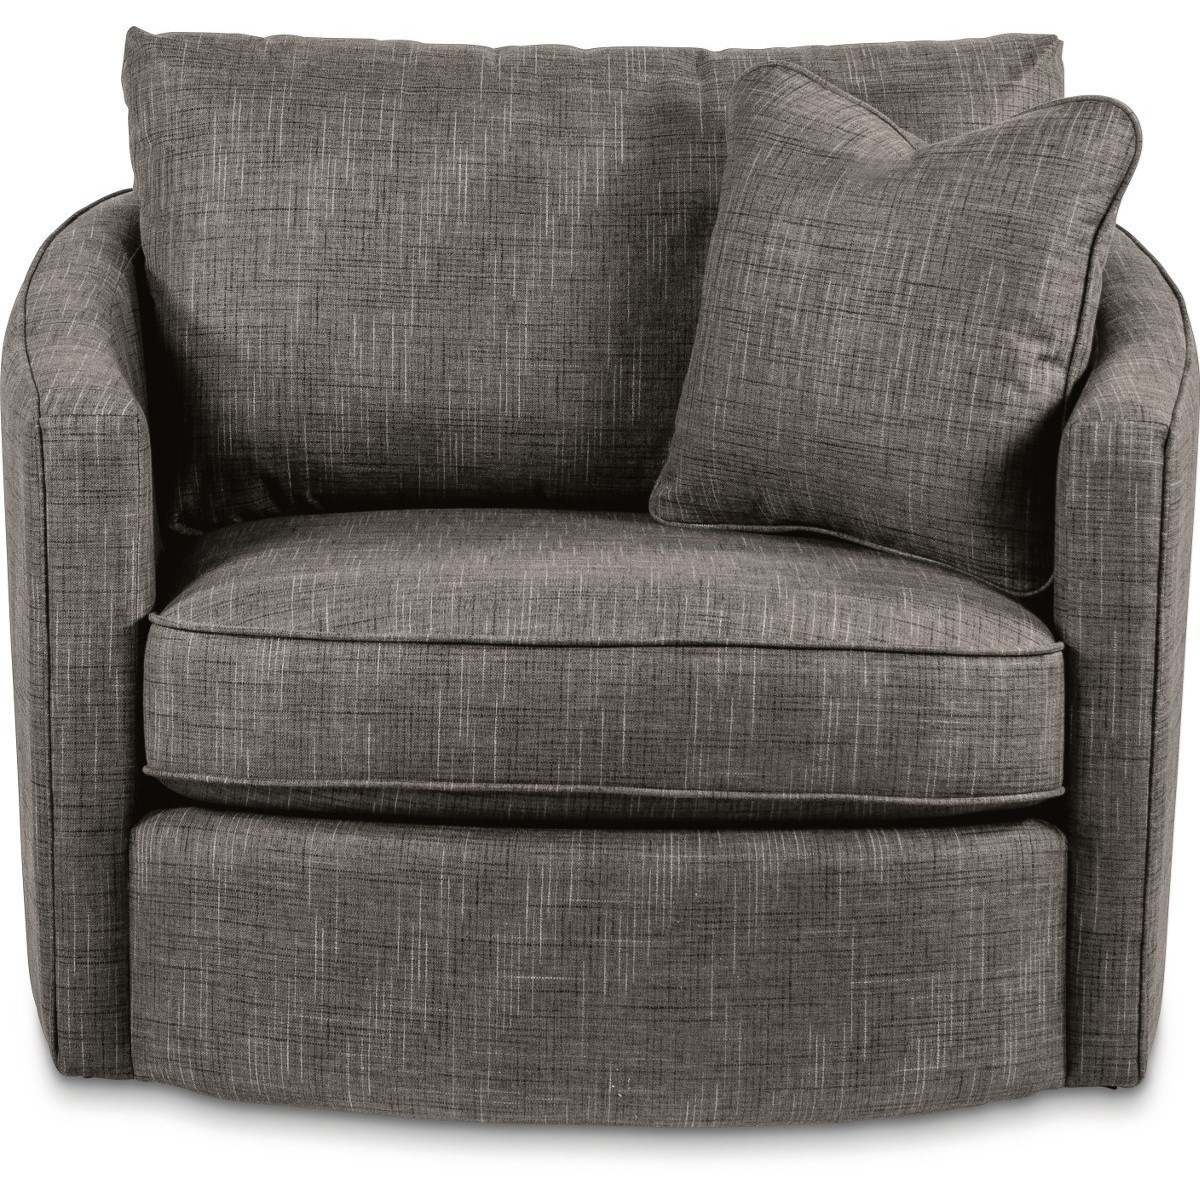 Clover Swivel Chair with Premier ComfortCore Cushion